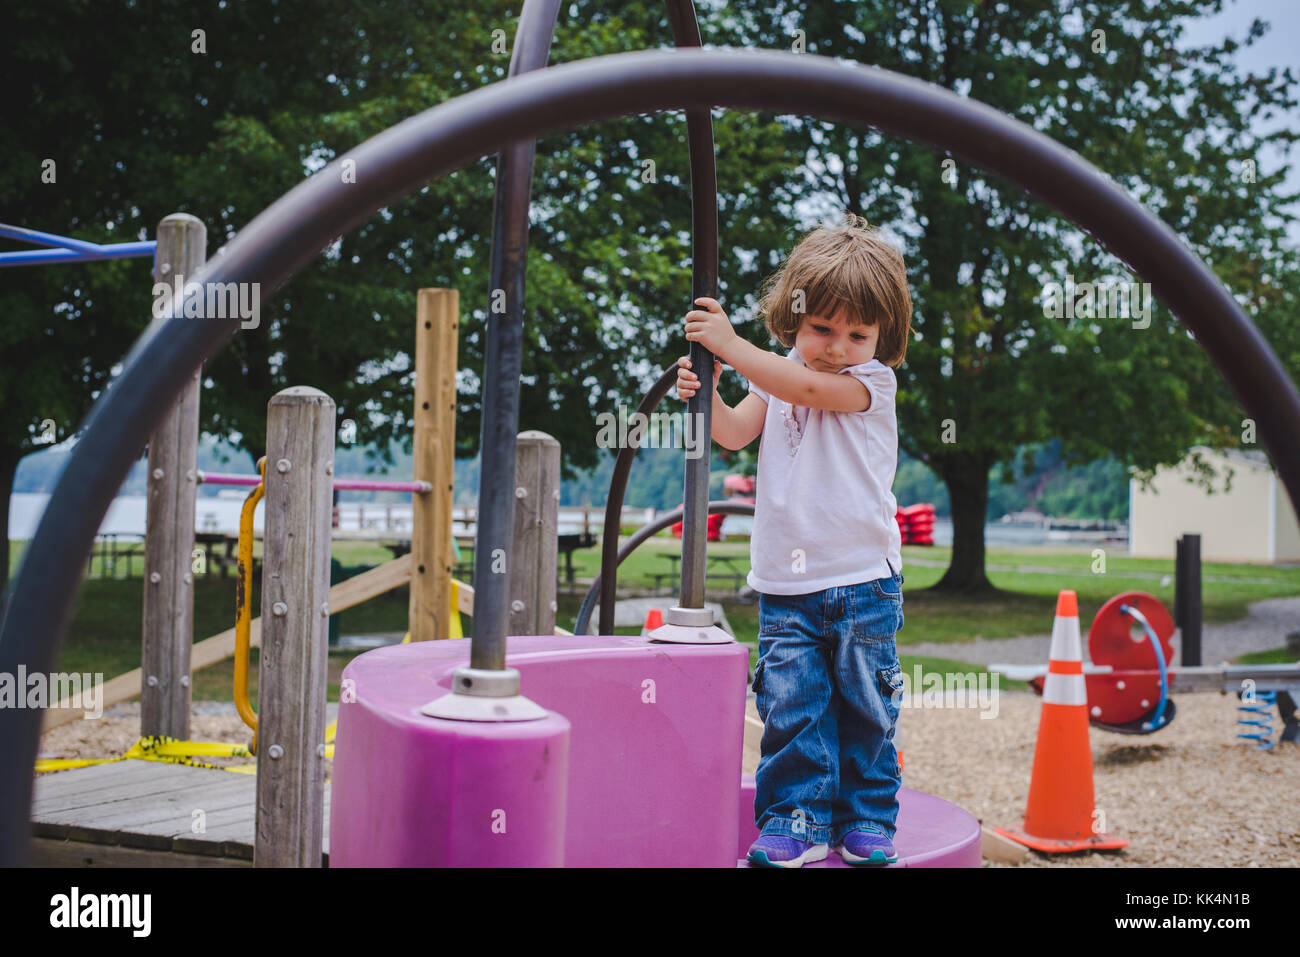 A little girl climbs on playground equipment on summer day Stock Photo